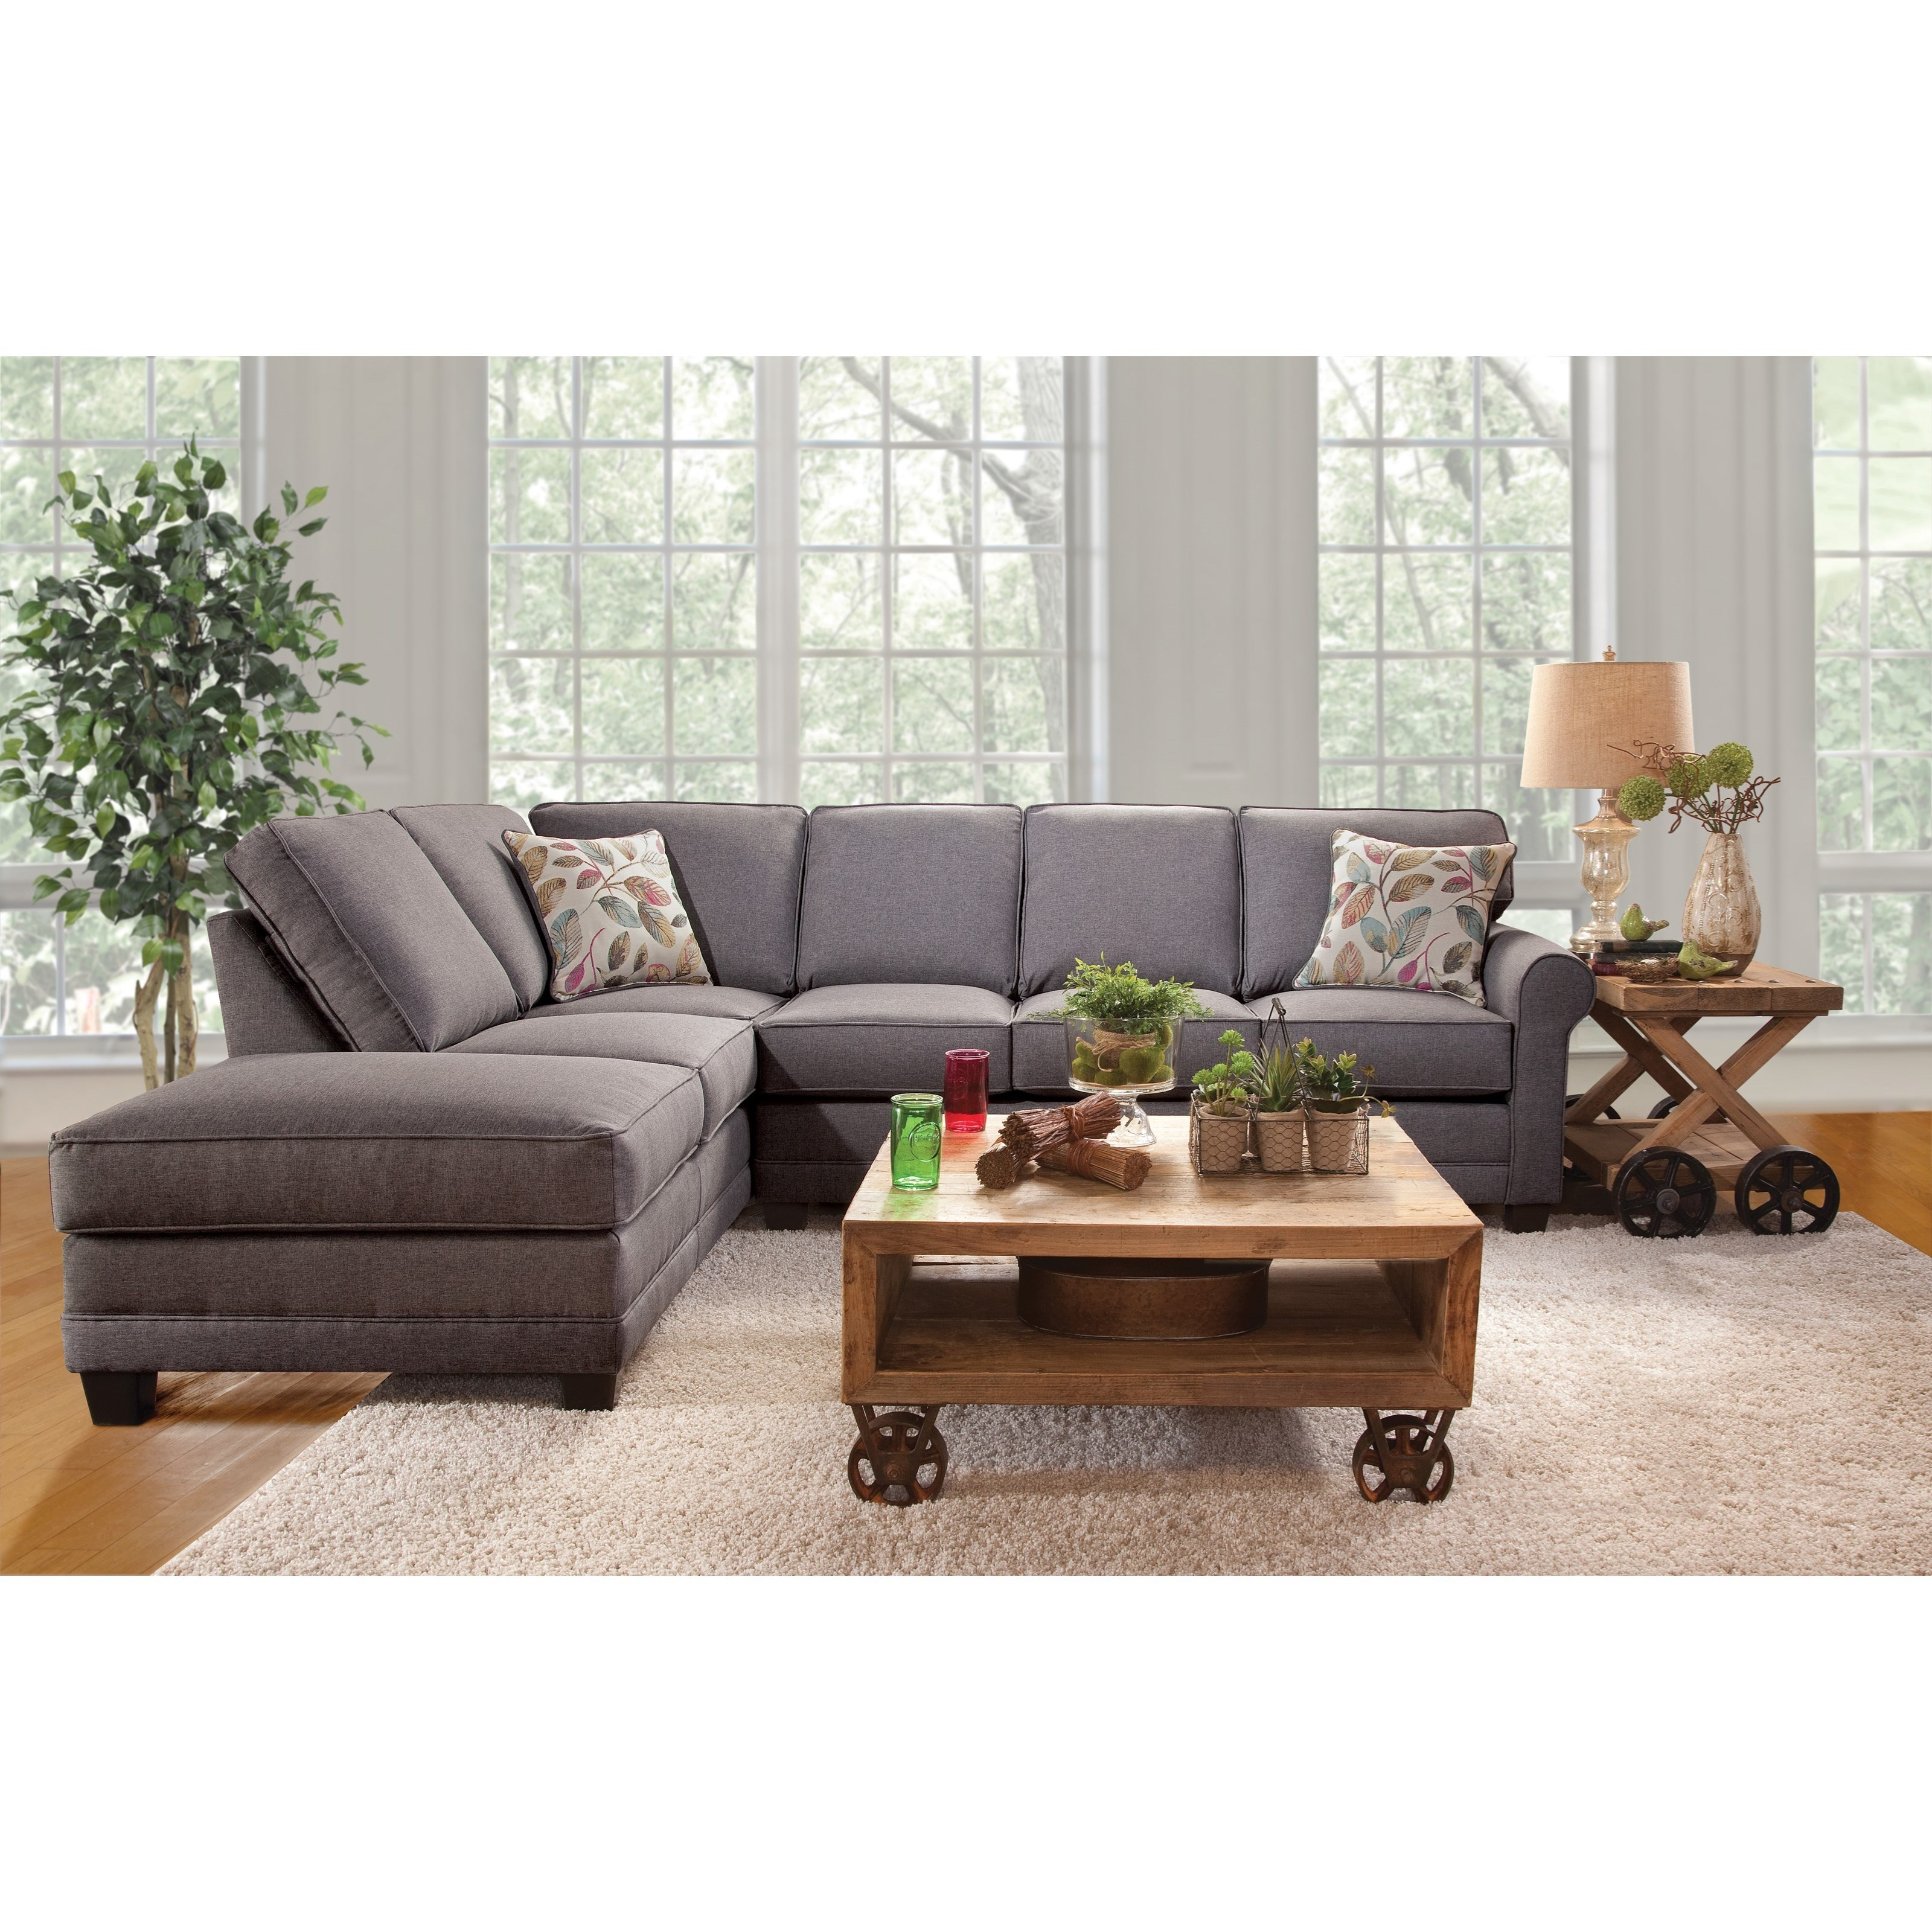 Charmant 3700 Casual Sectional Sofa With Chaise By Serta Upholstery